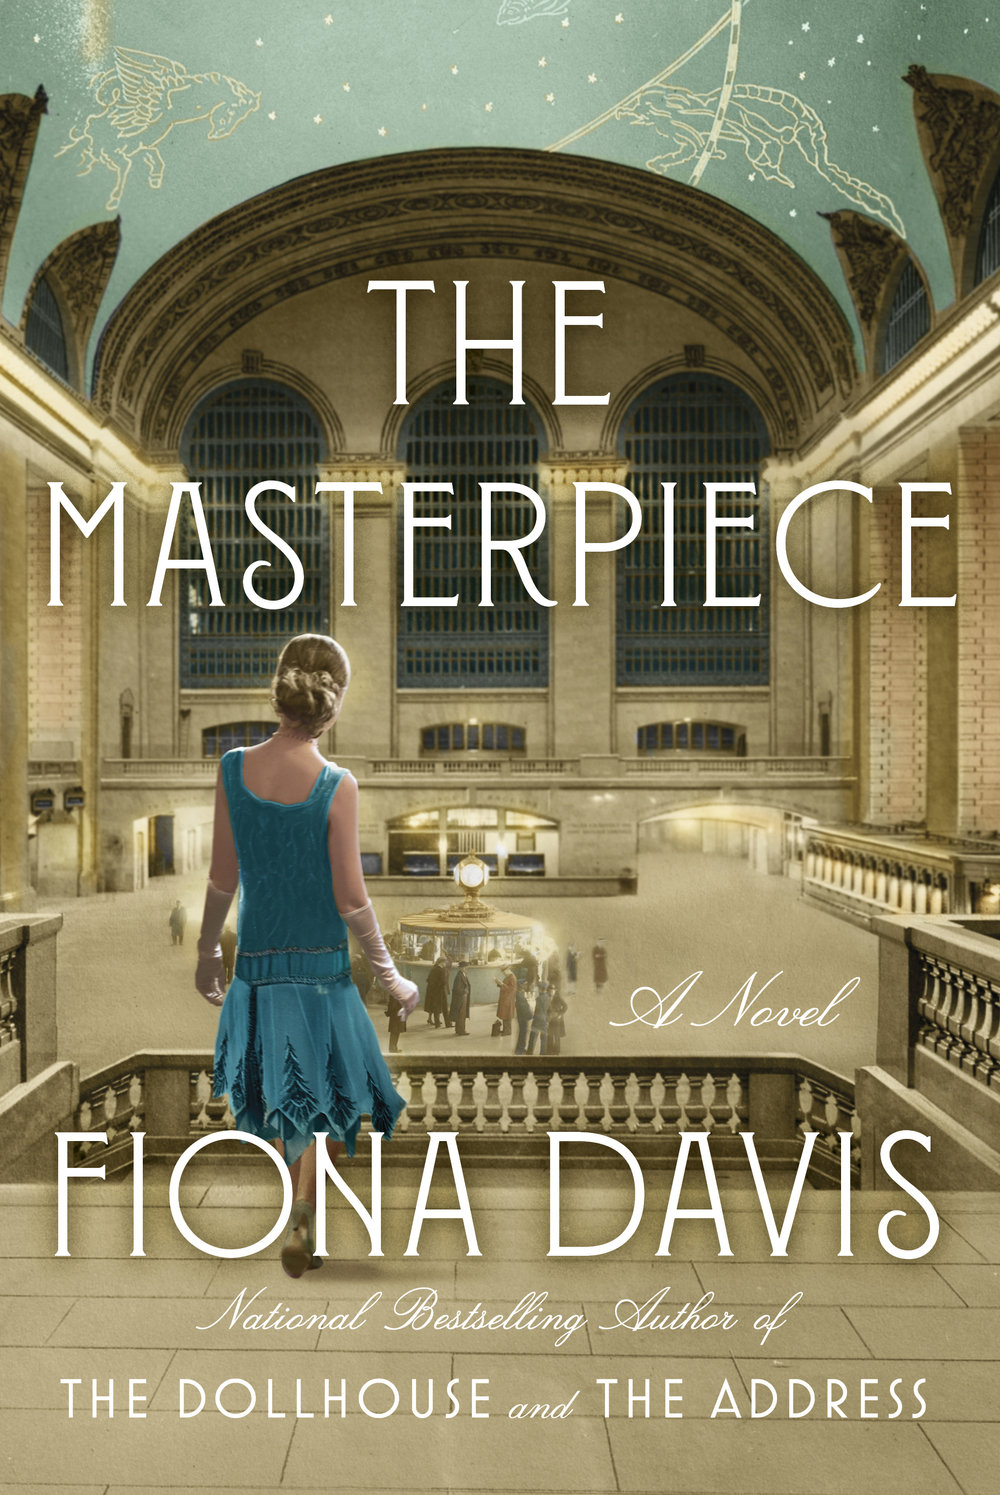 THE MASTERPIECE LRG cover Fiona Davis.jpg